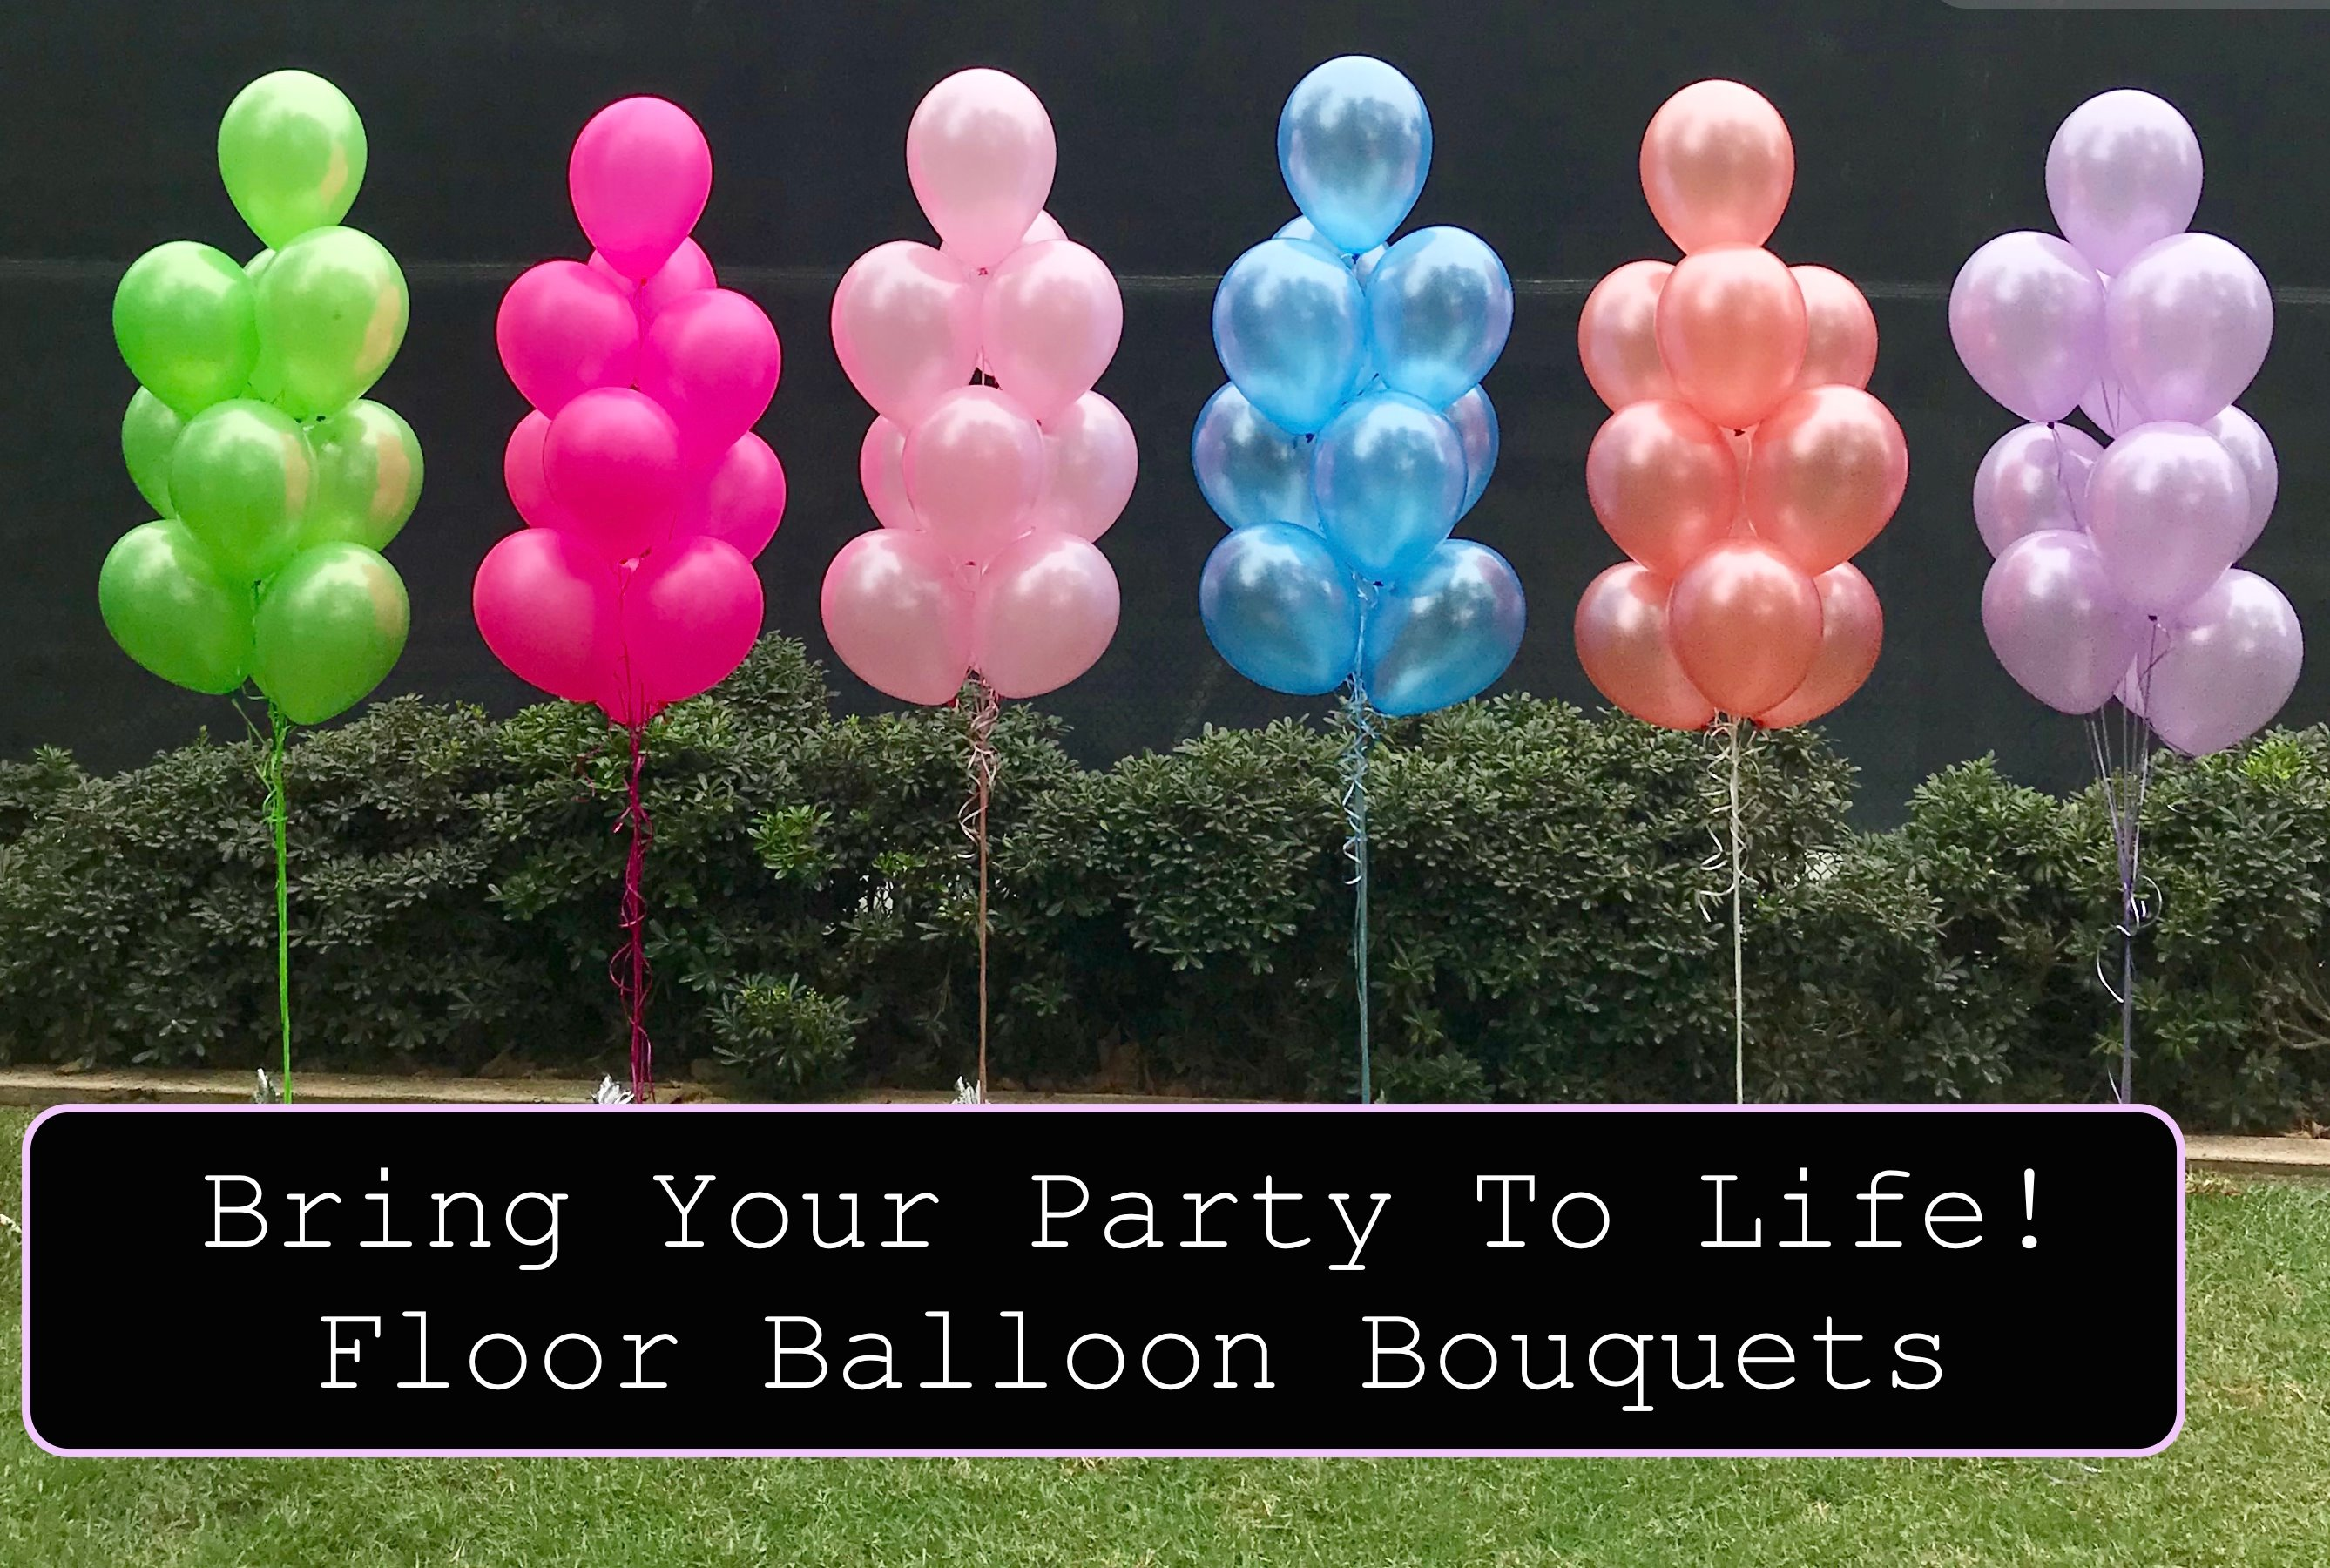 Balloon Bouquets Floor(1)_edited